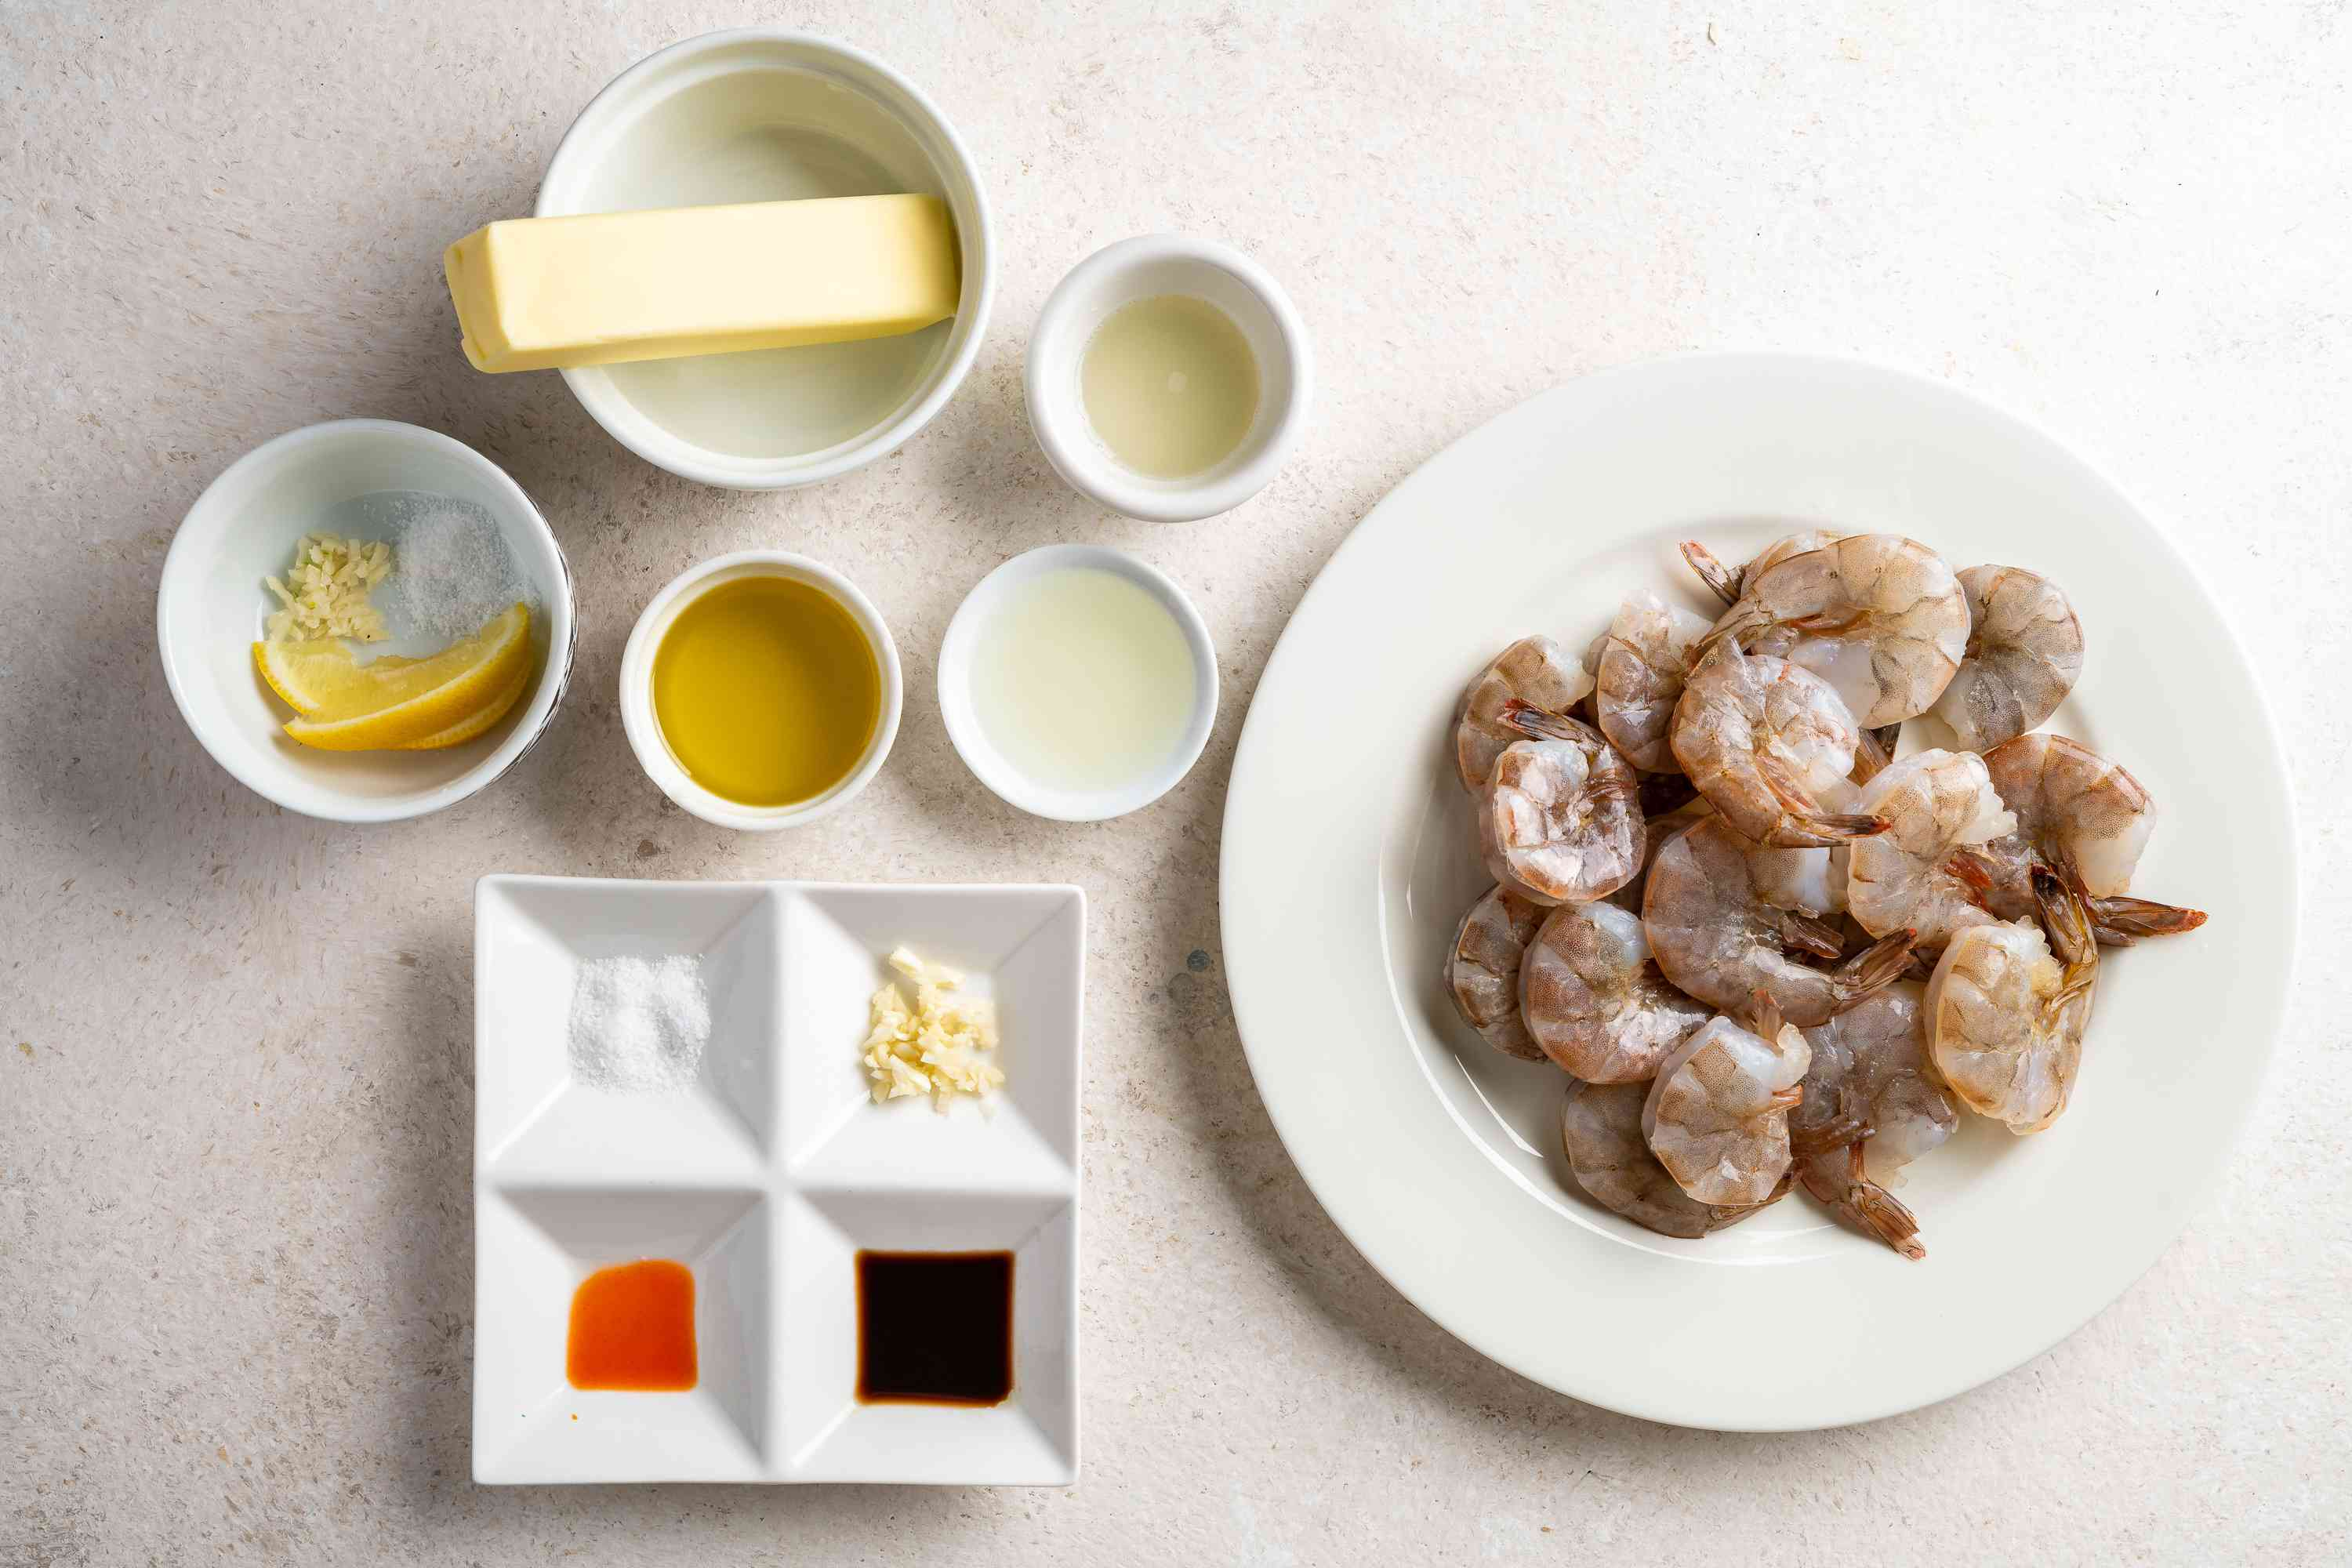 Grilled Shrimp With Garlic Butter Dipping Sauce ingredients